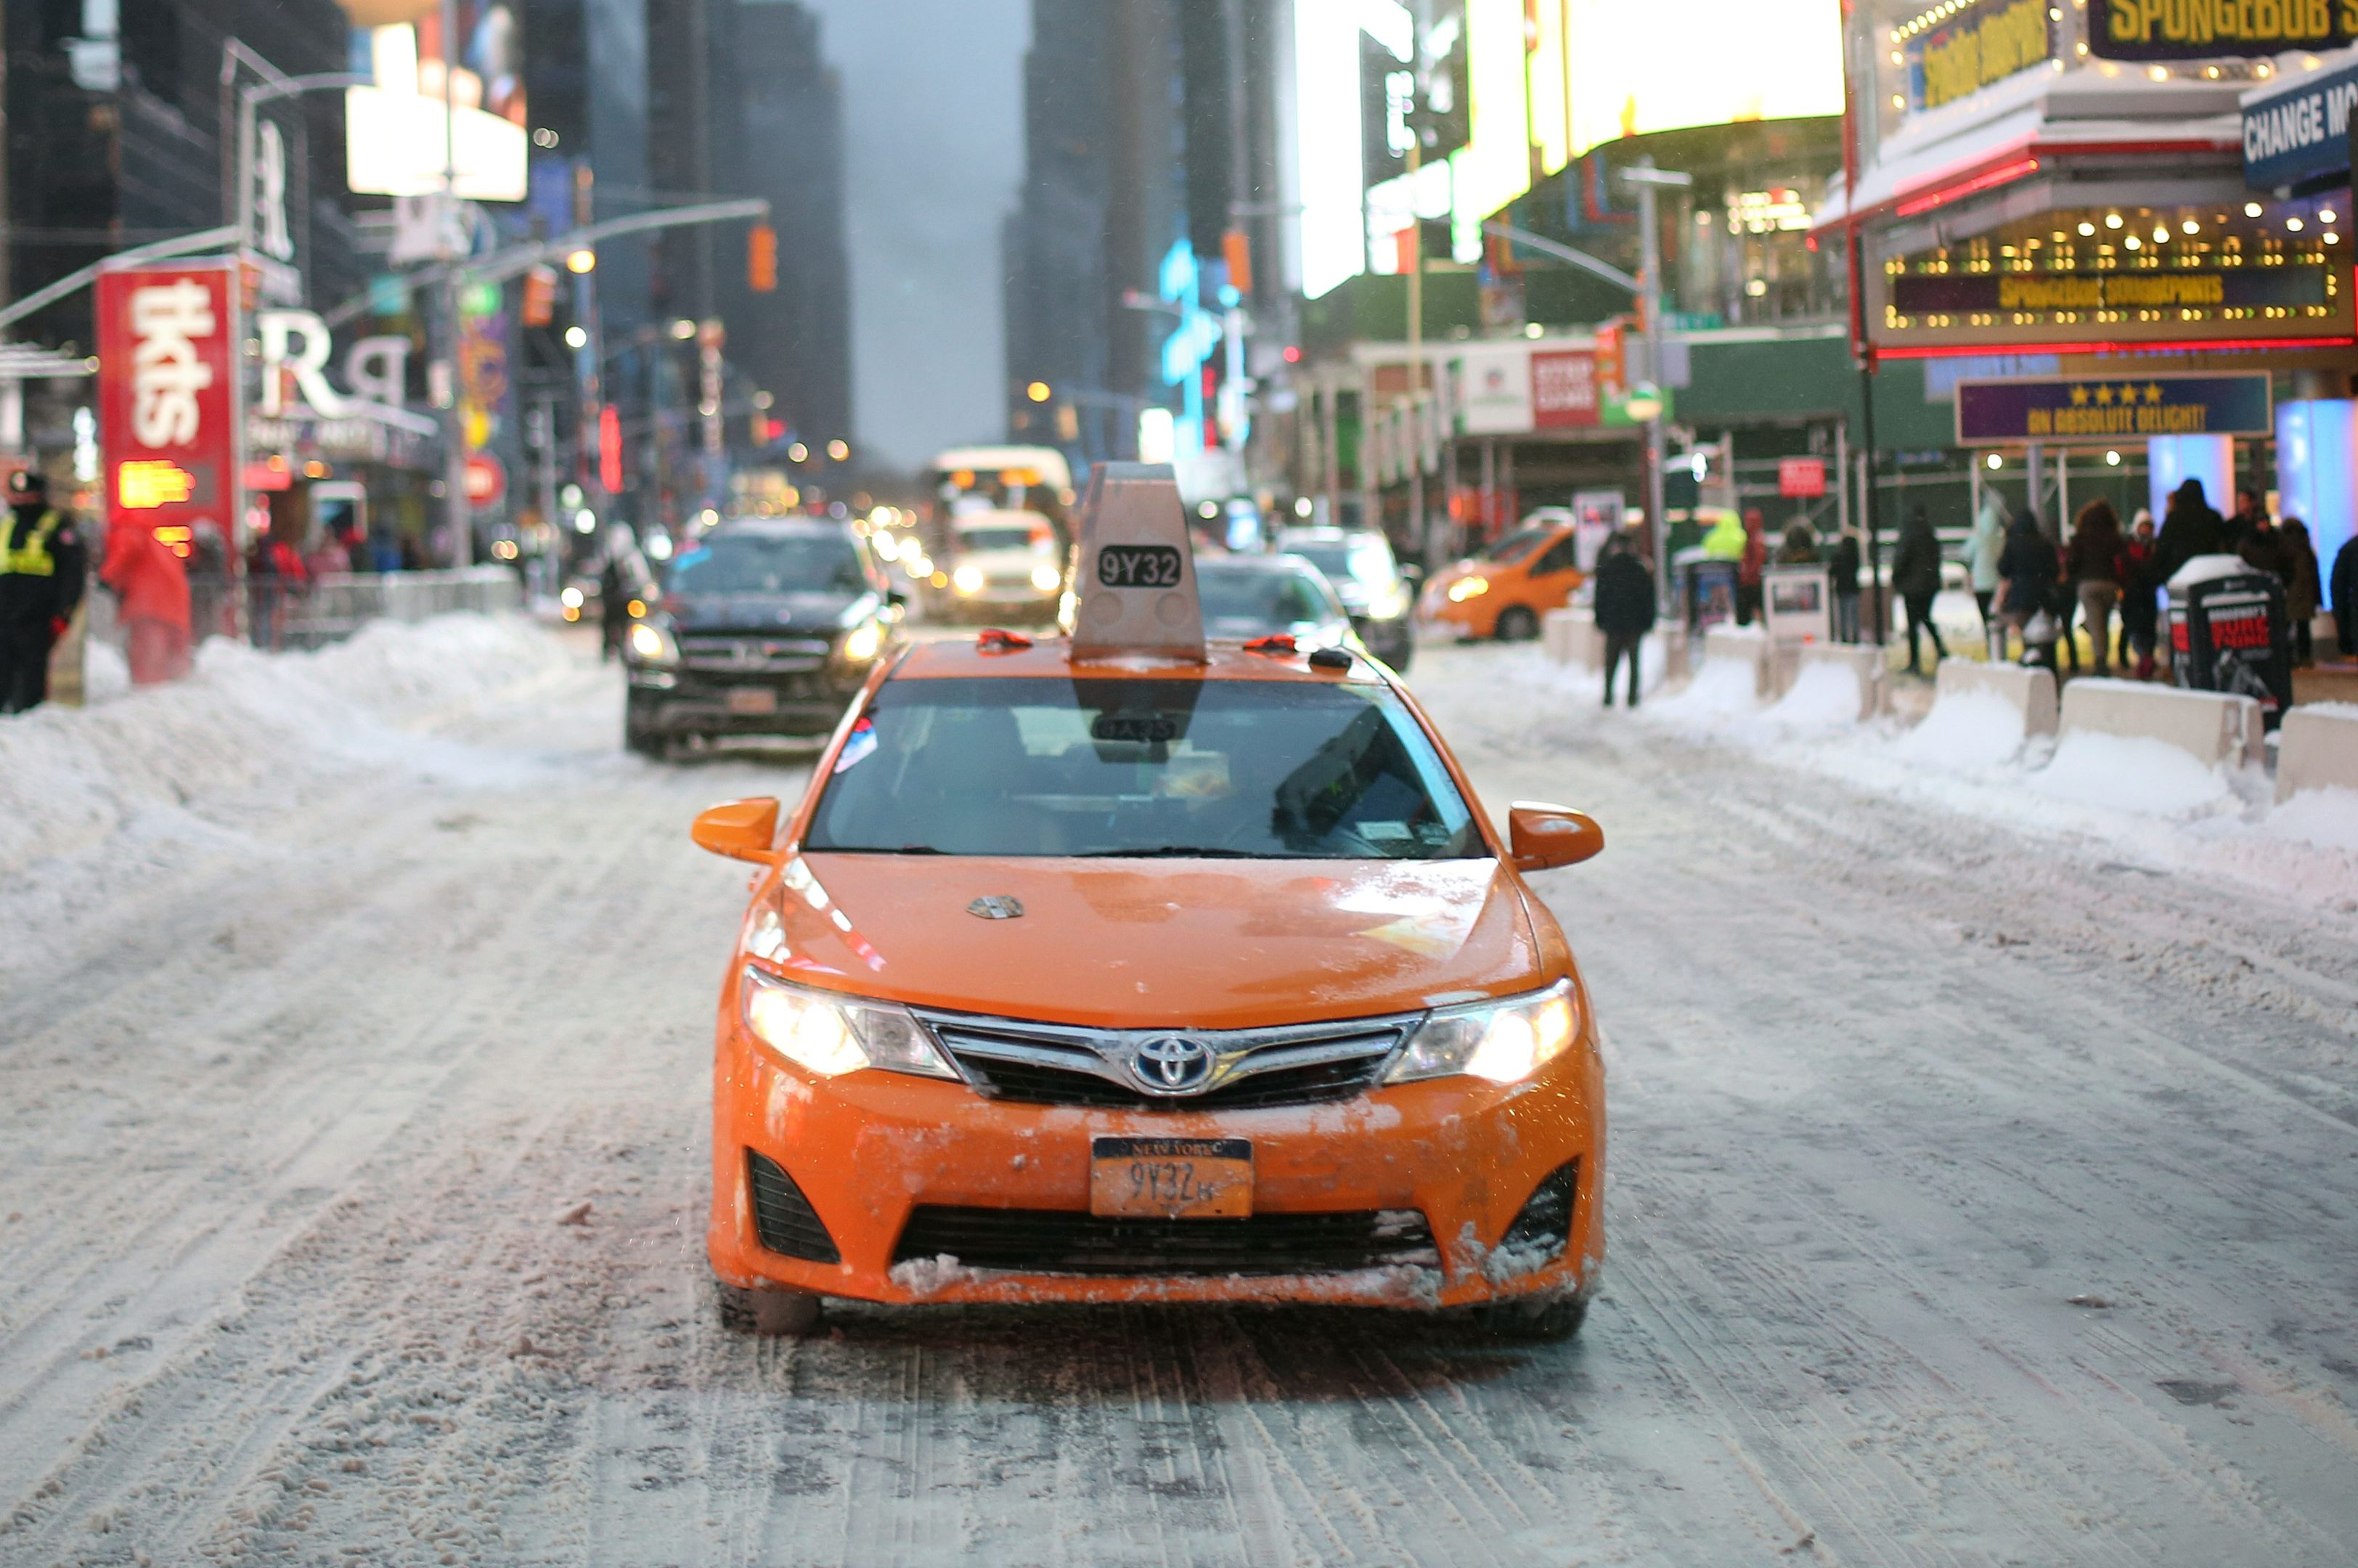 A cab is seen in Times Square during a snowstorm in Manhattan (Mohammed Elshamy/Anadolu Agency/Getty Images)